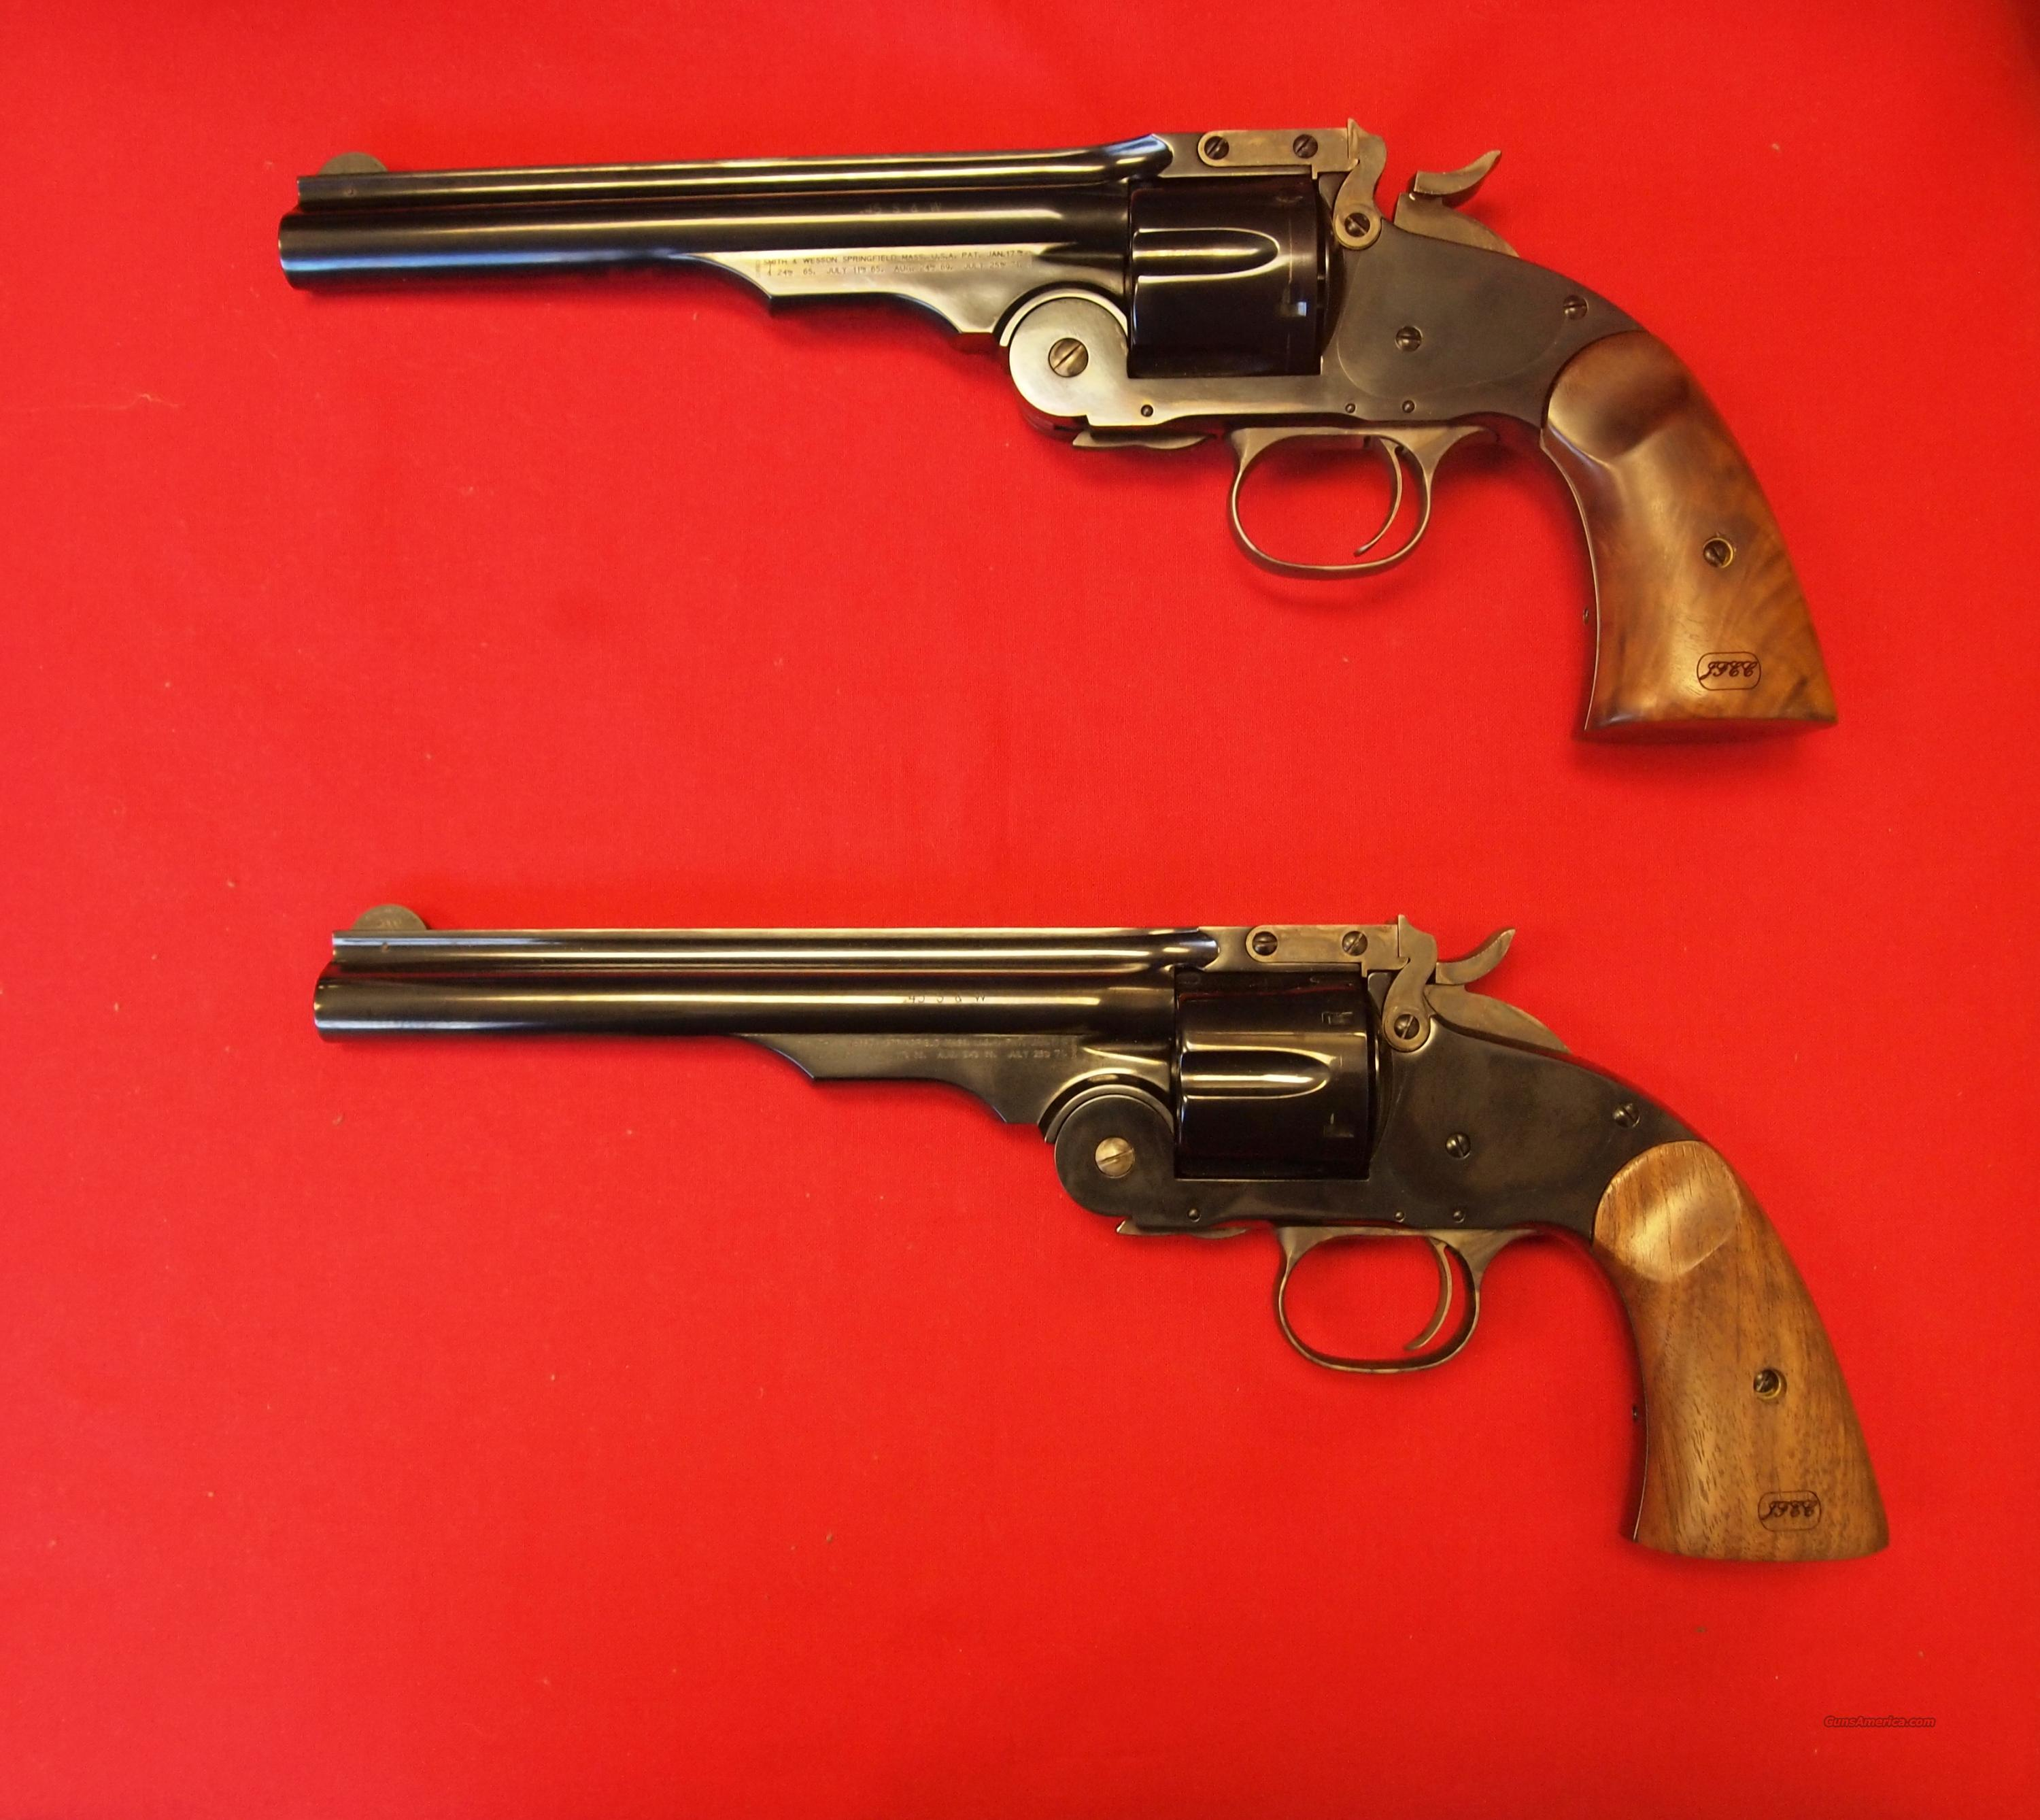 2 (Set) S&W Schofield Model 2000 .45 Schofield  Guns > Pistols > Smith & Wesson Revolvers > Full Frame Revolver